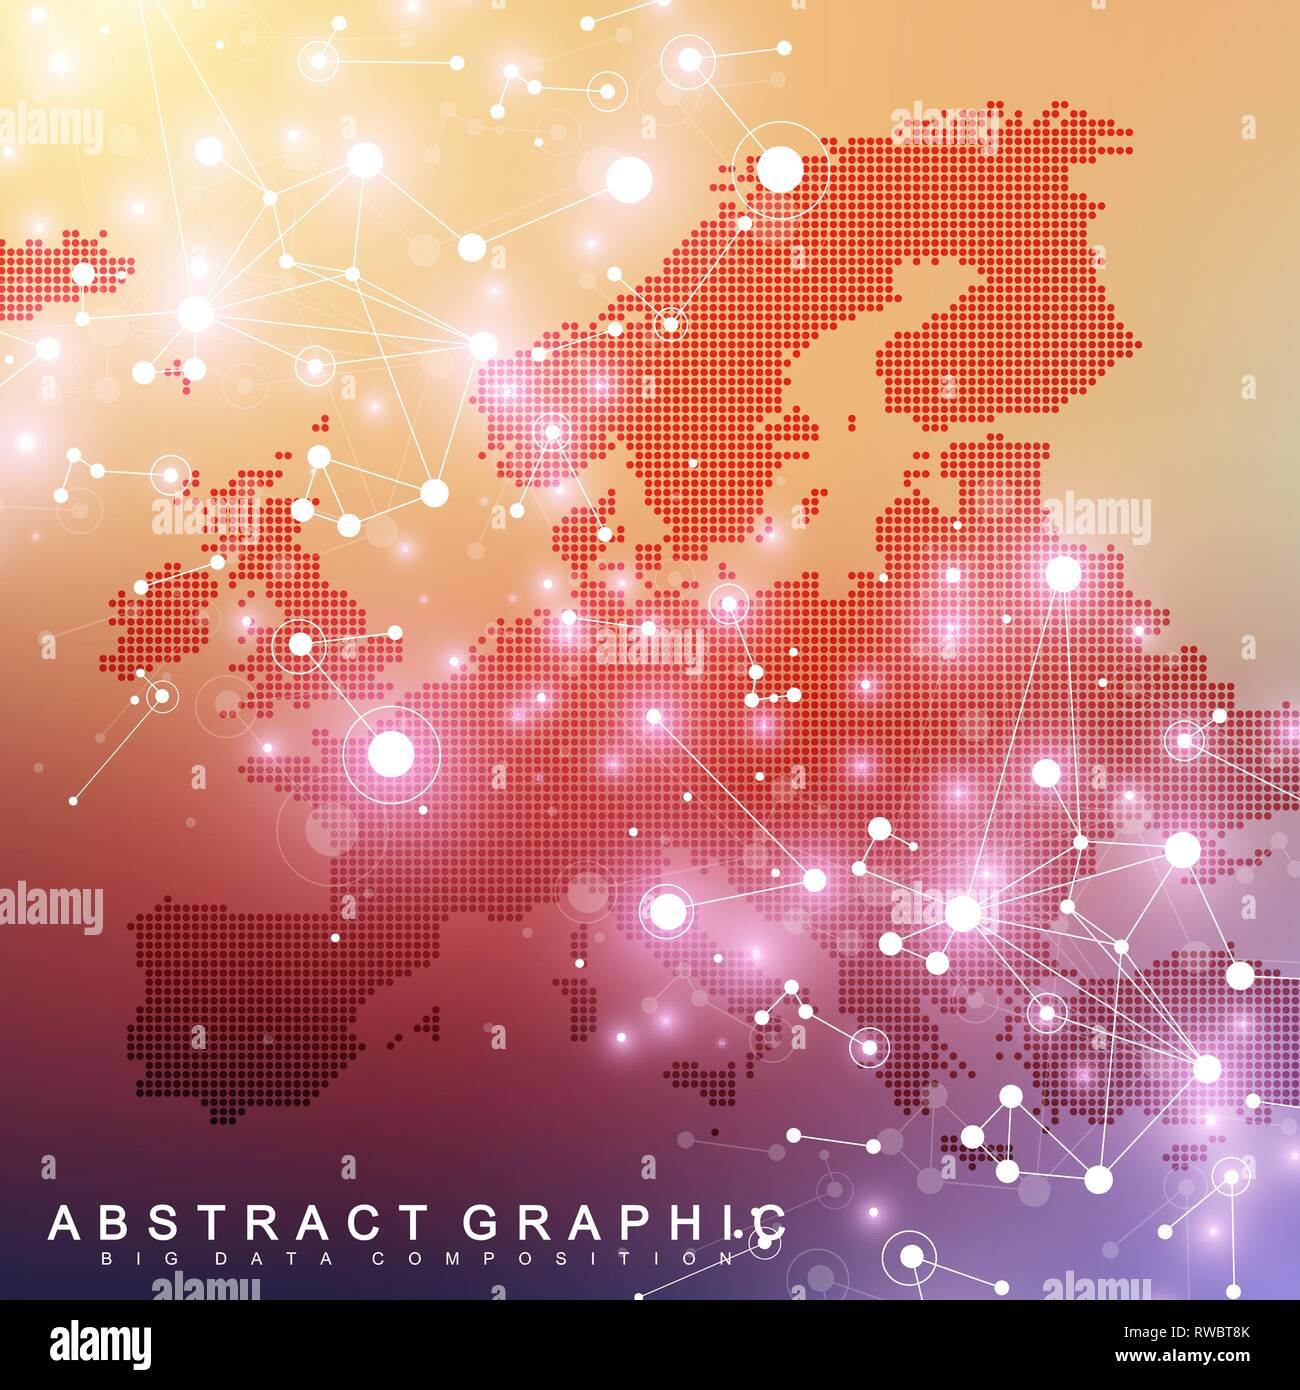 Geometric graphic background communication with Europe Map. Big data complex with compounds. Perspective backdrop. Minimal array. Digital data - Stock Image